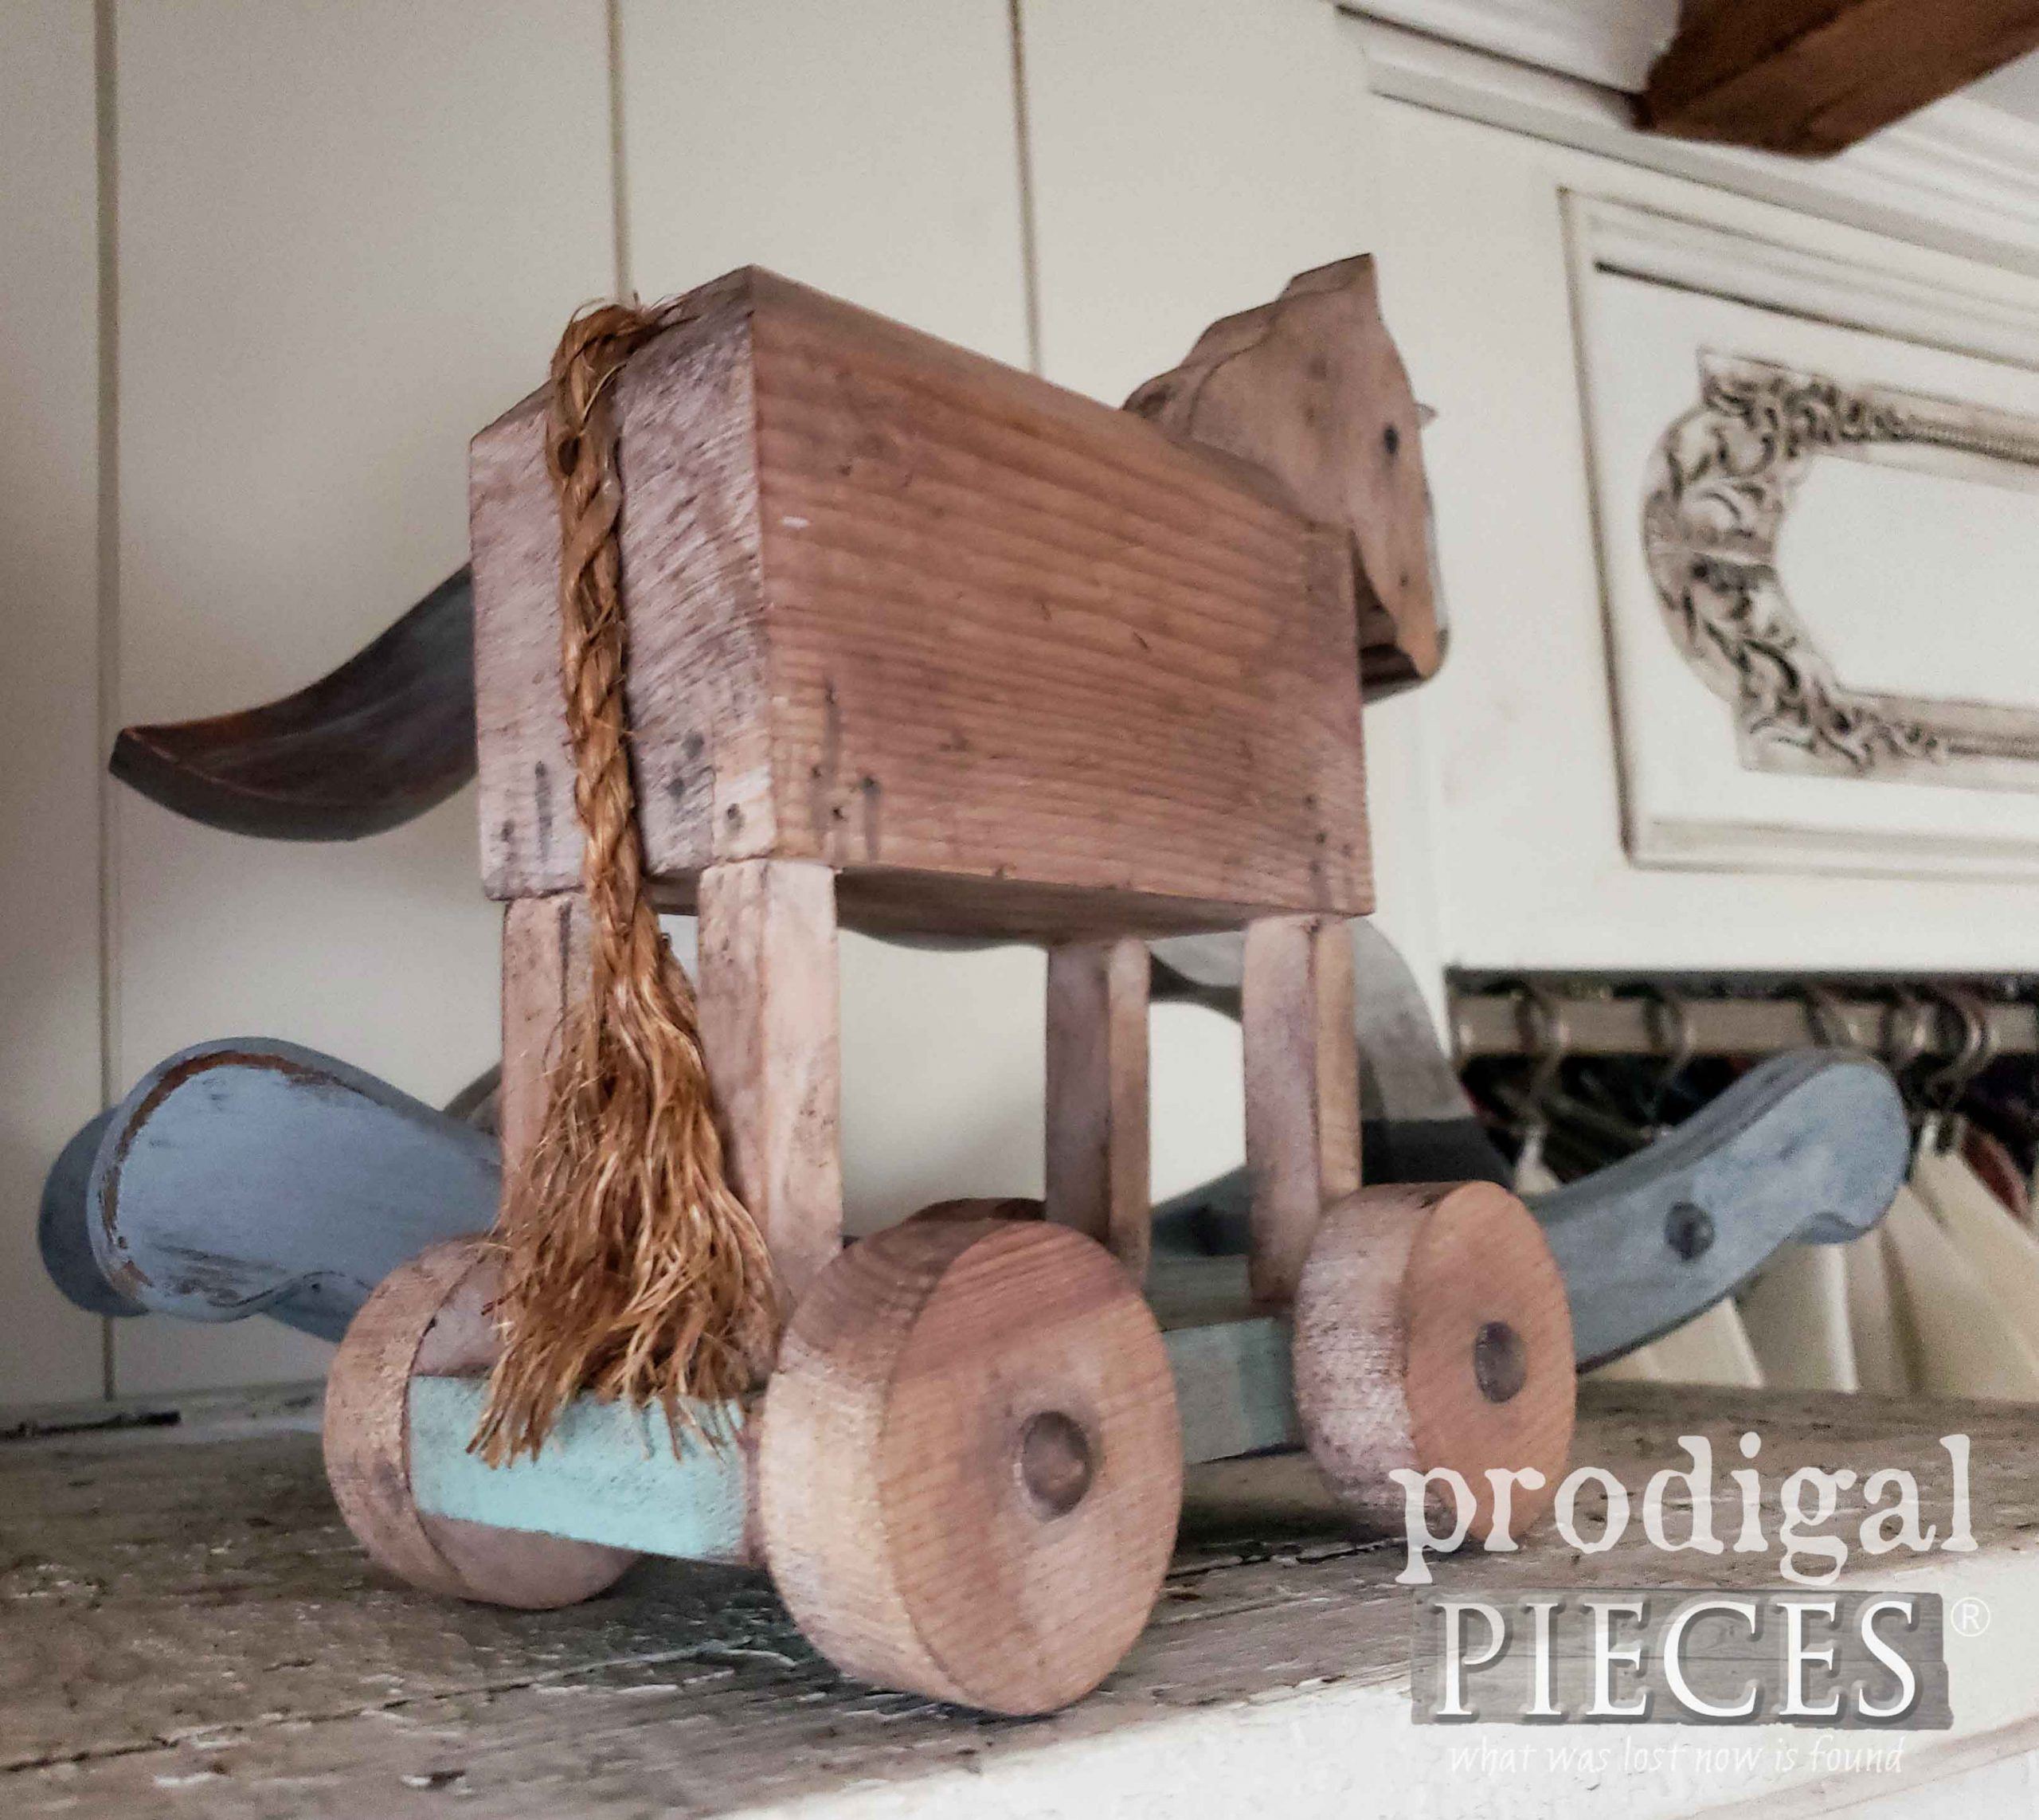 Small Wooden Trojan Horse with Rope Tail | prodigalpieces.com #prodigalpieces #handmade #farmhouse #home #homedecor